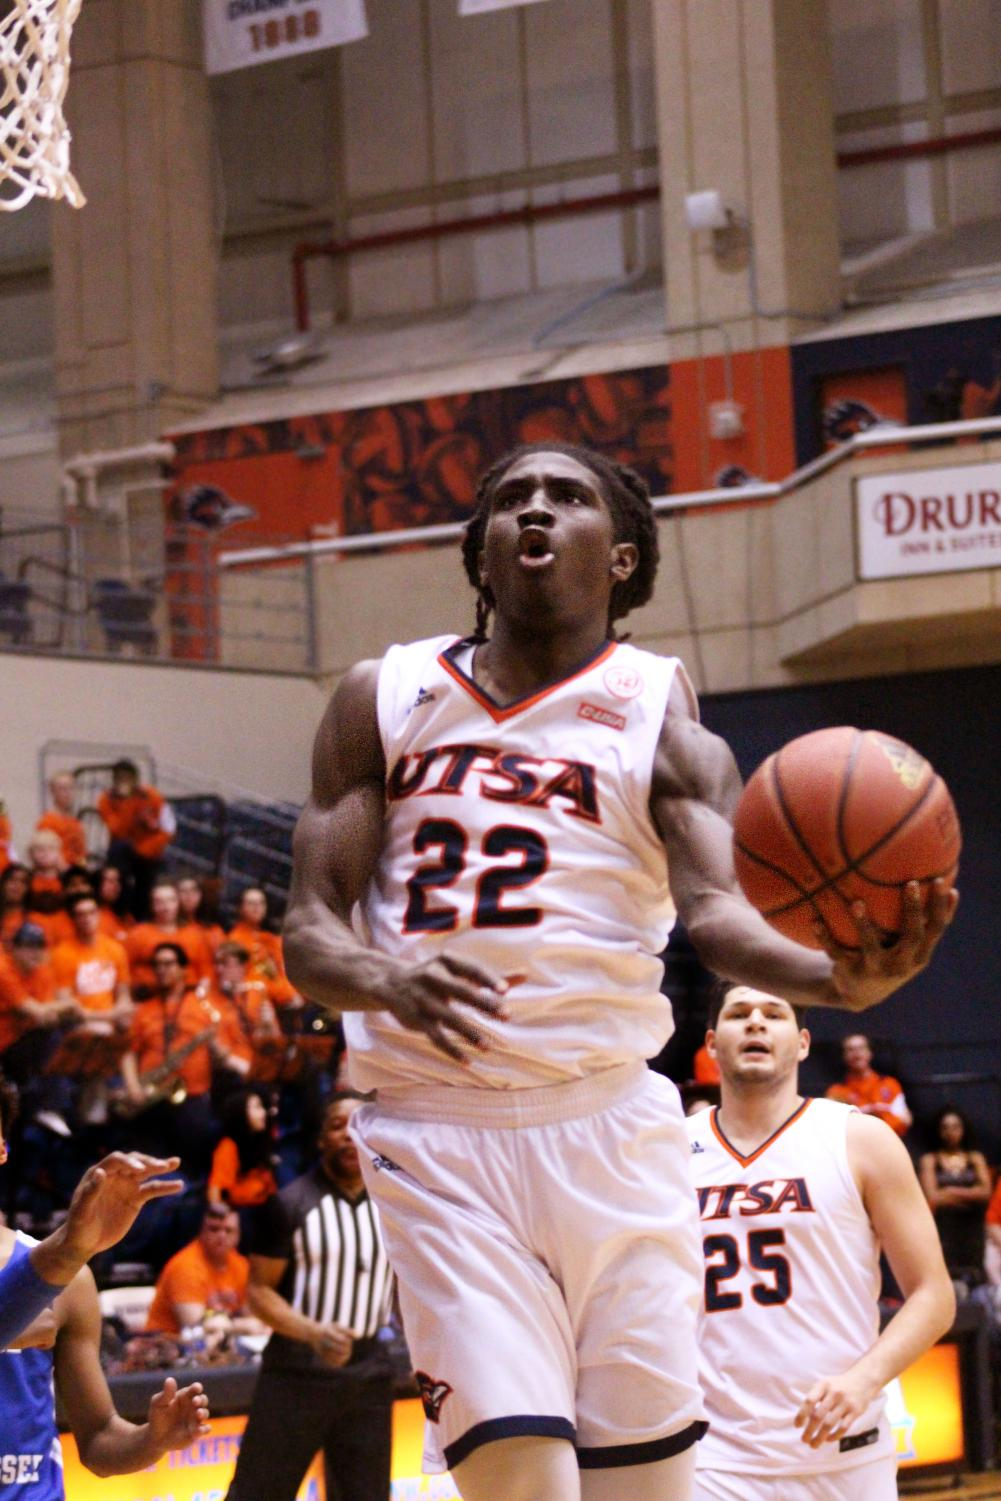 Keaton Wallace brings the ball up to make a lay-up. Wallace is the second half of Conference USA's highest scoring duo.